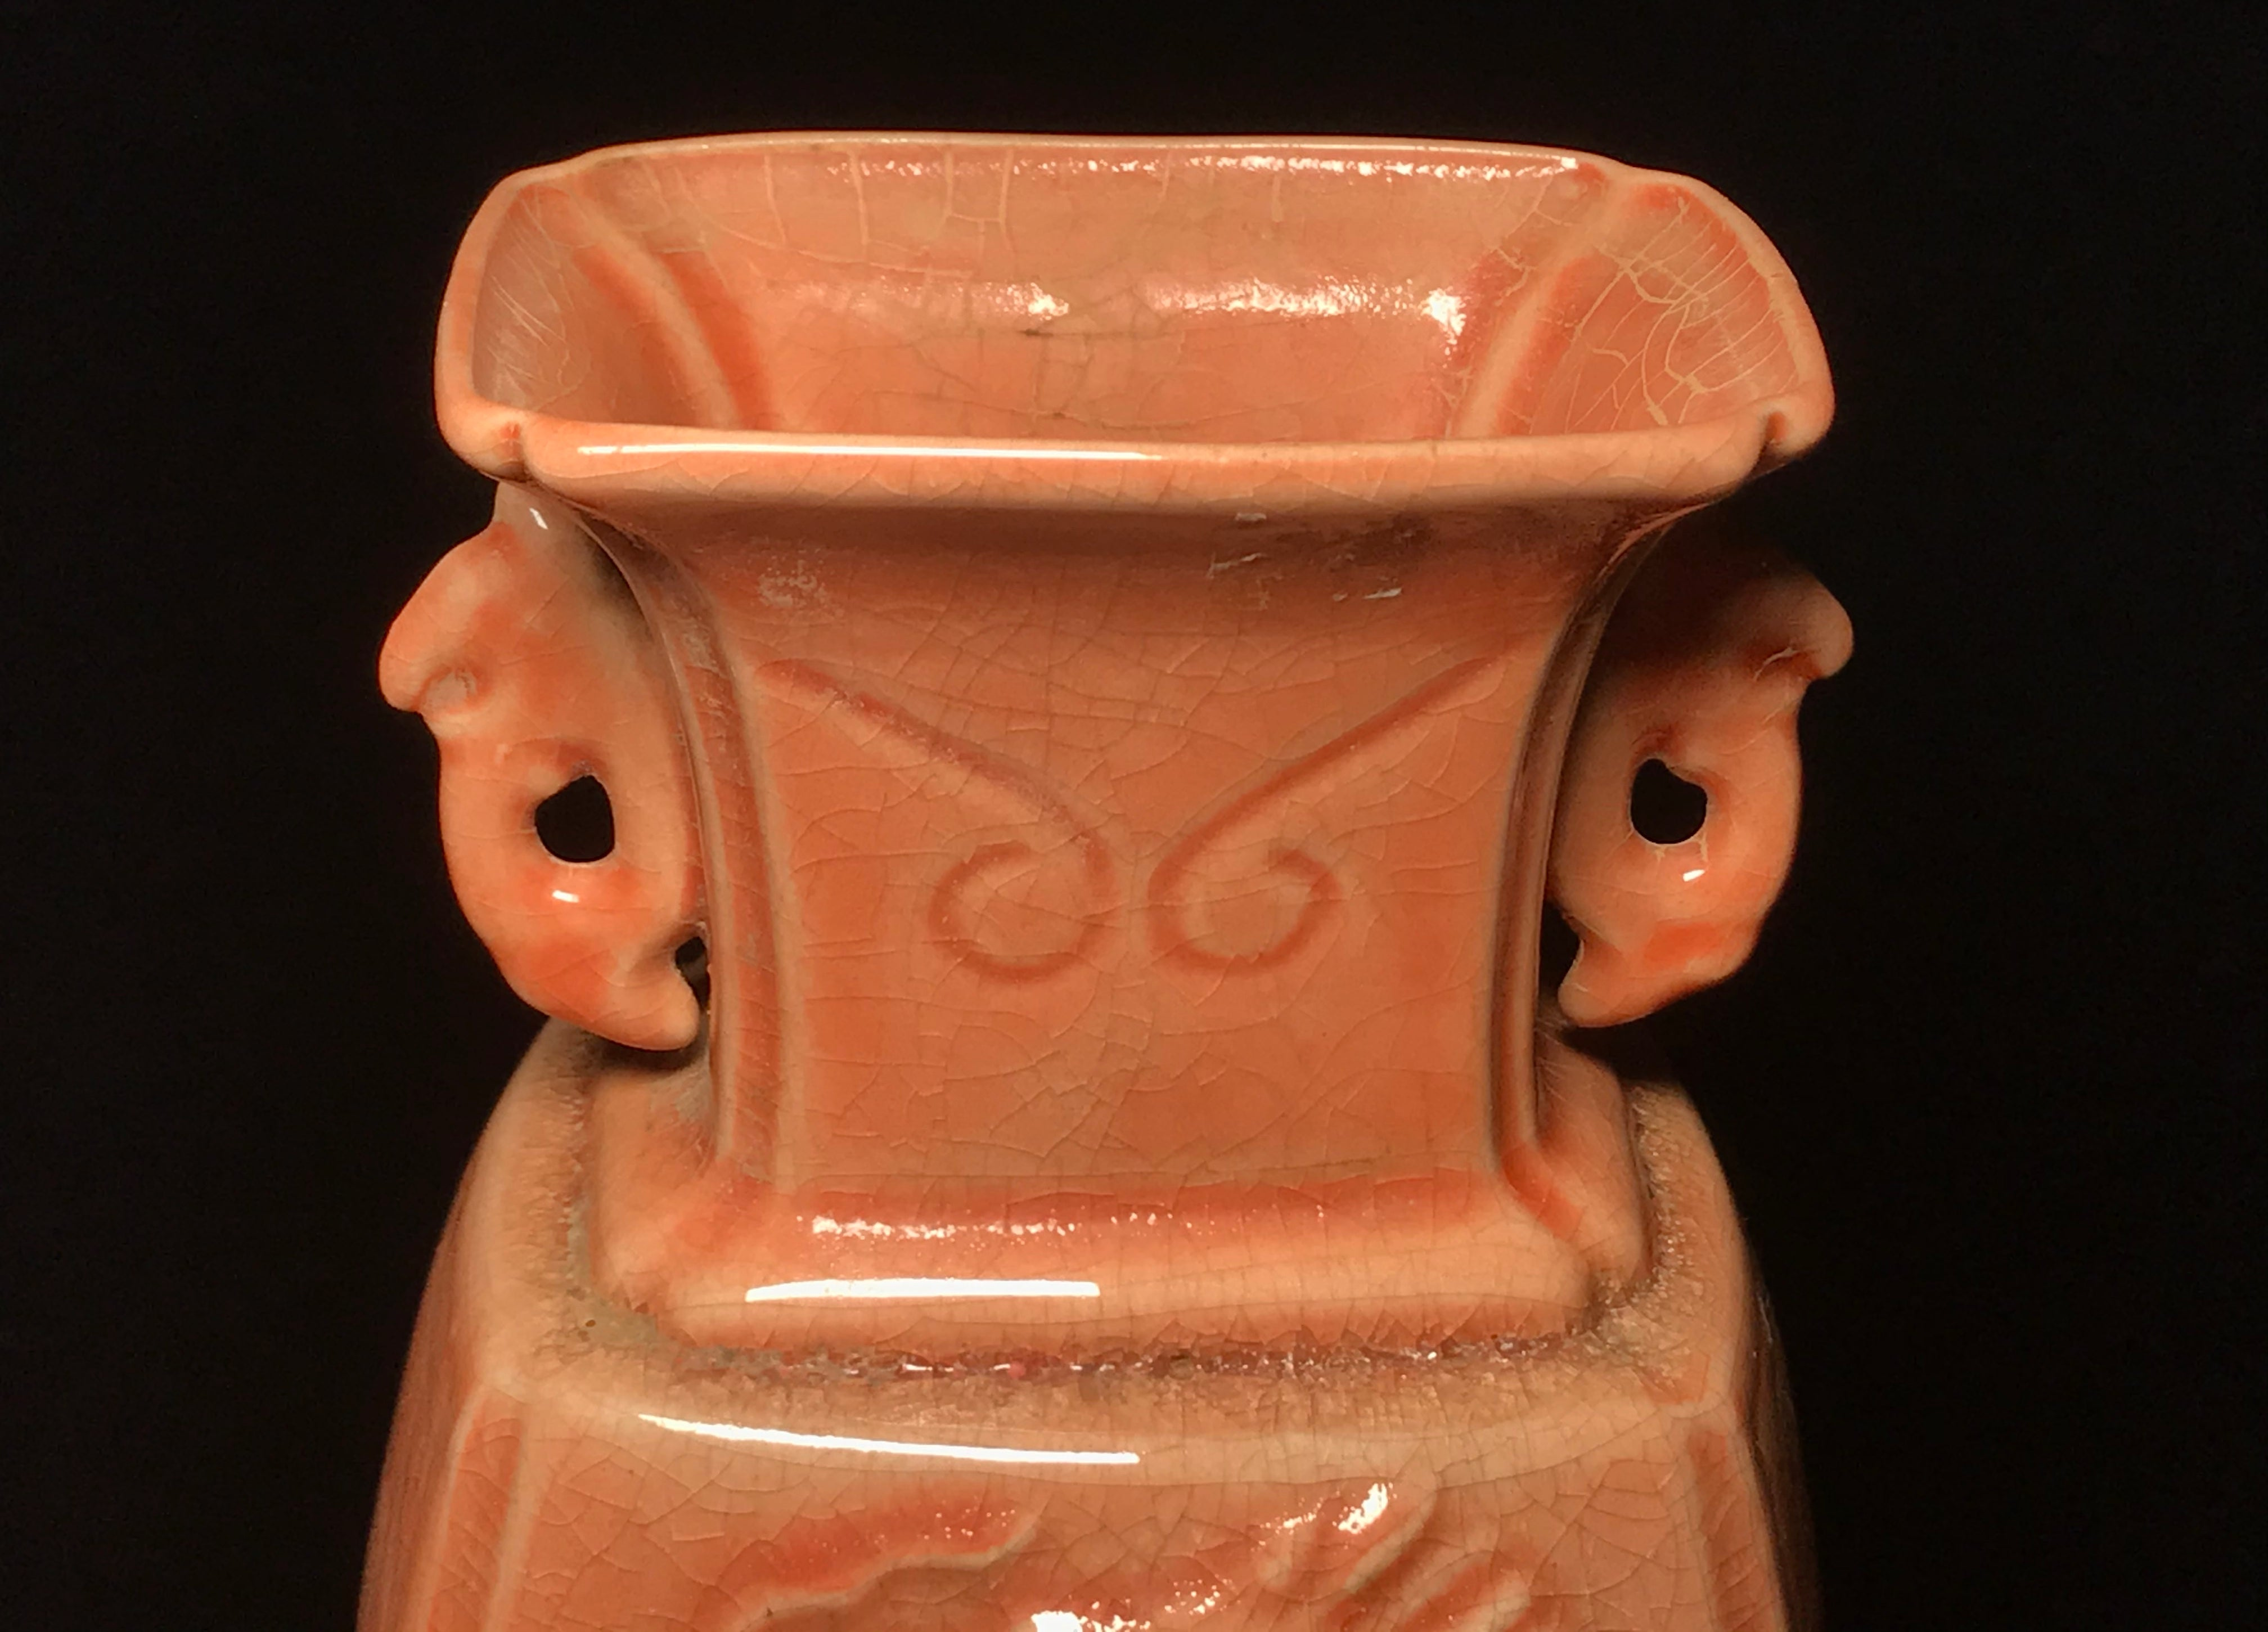 Chinese Chai Ware Vase - 10 Dynasties